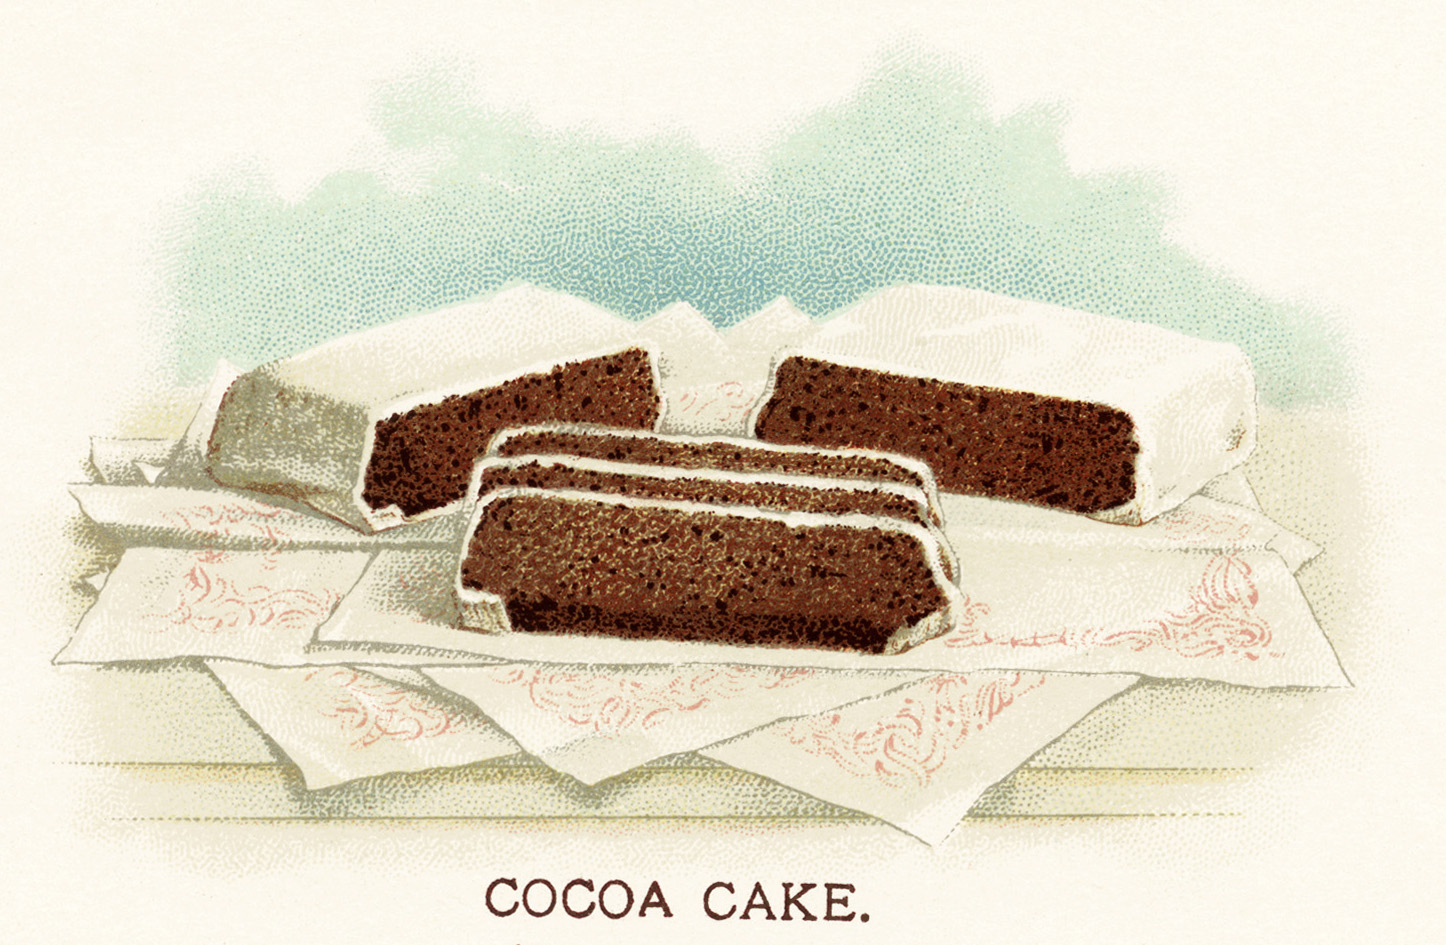 This vintage image features a yummy cocoa layer cake